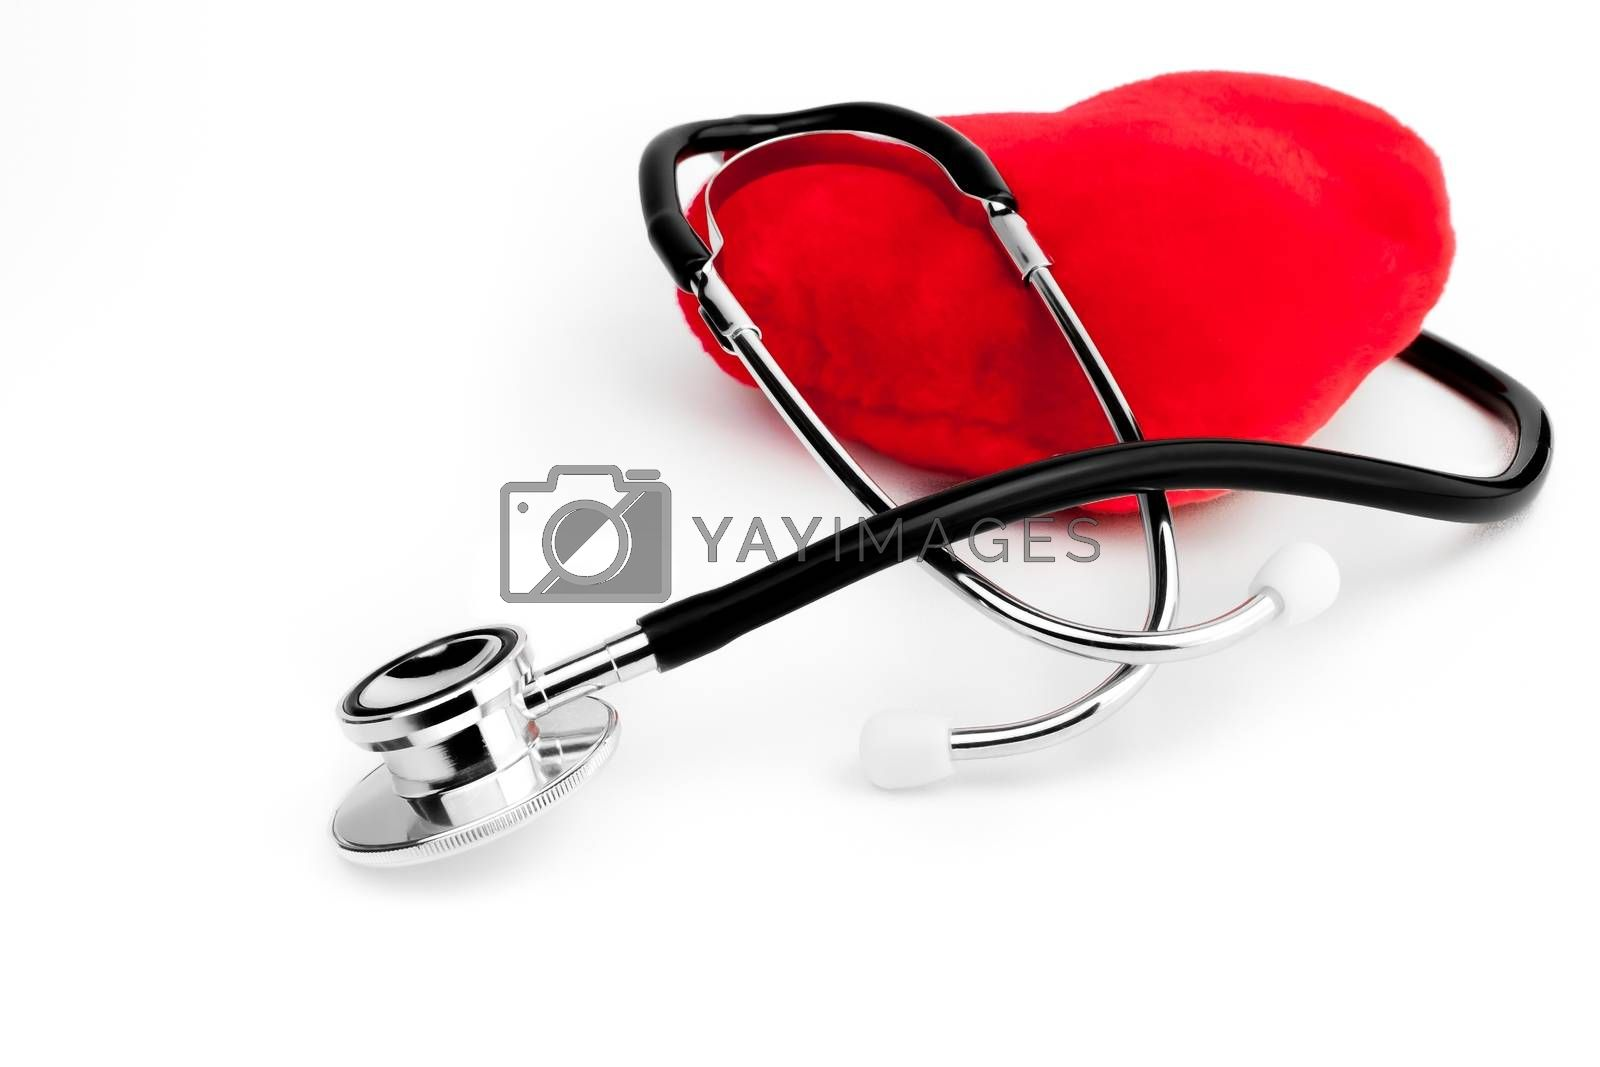 close up of a stethoscope on heart on white background